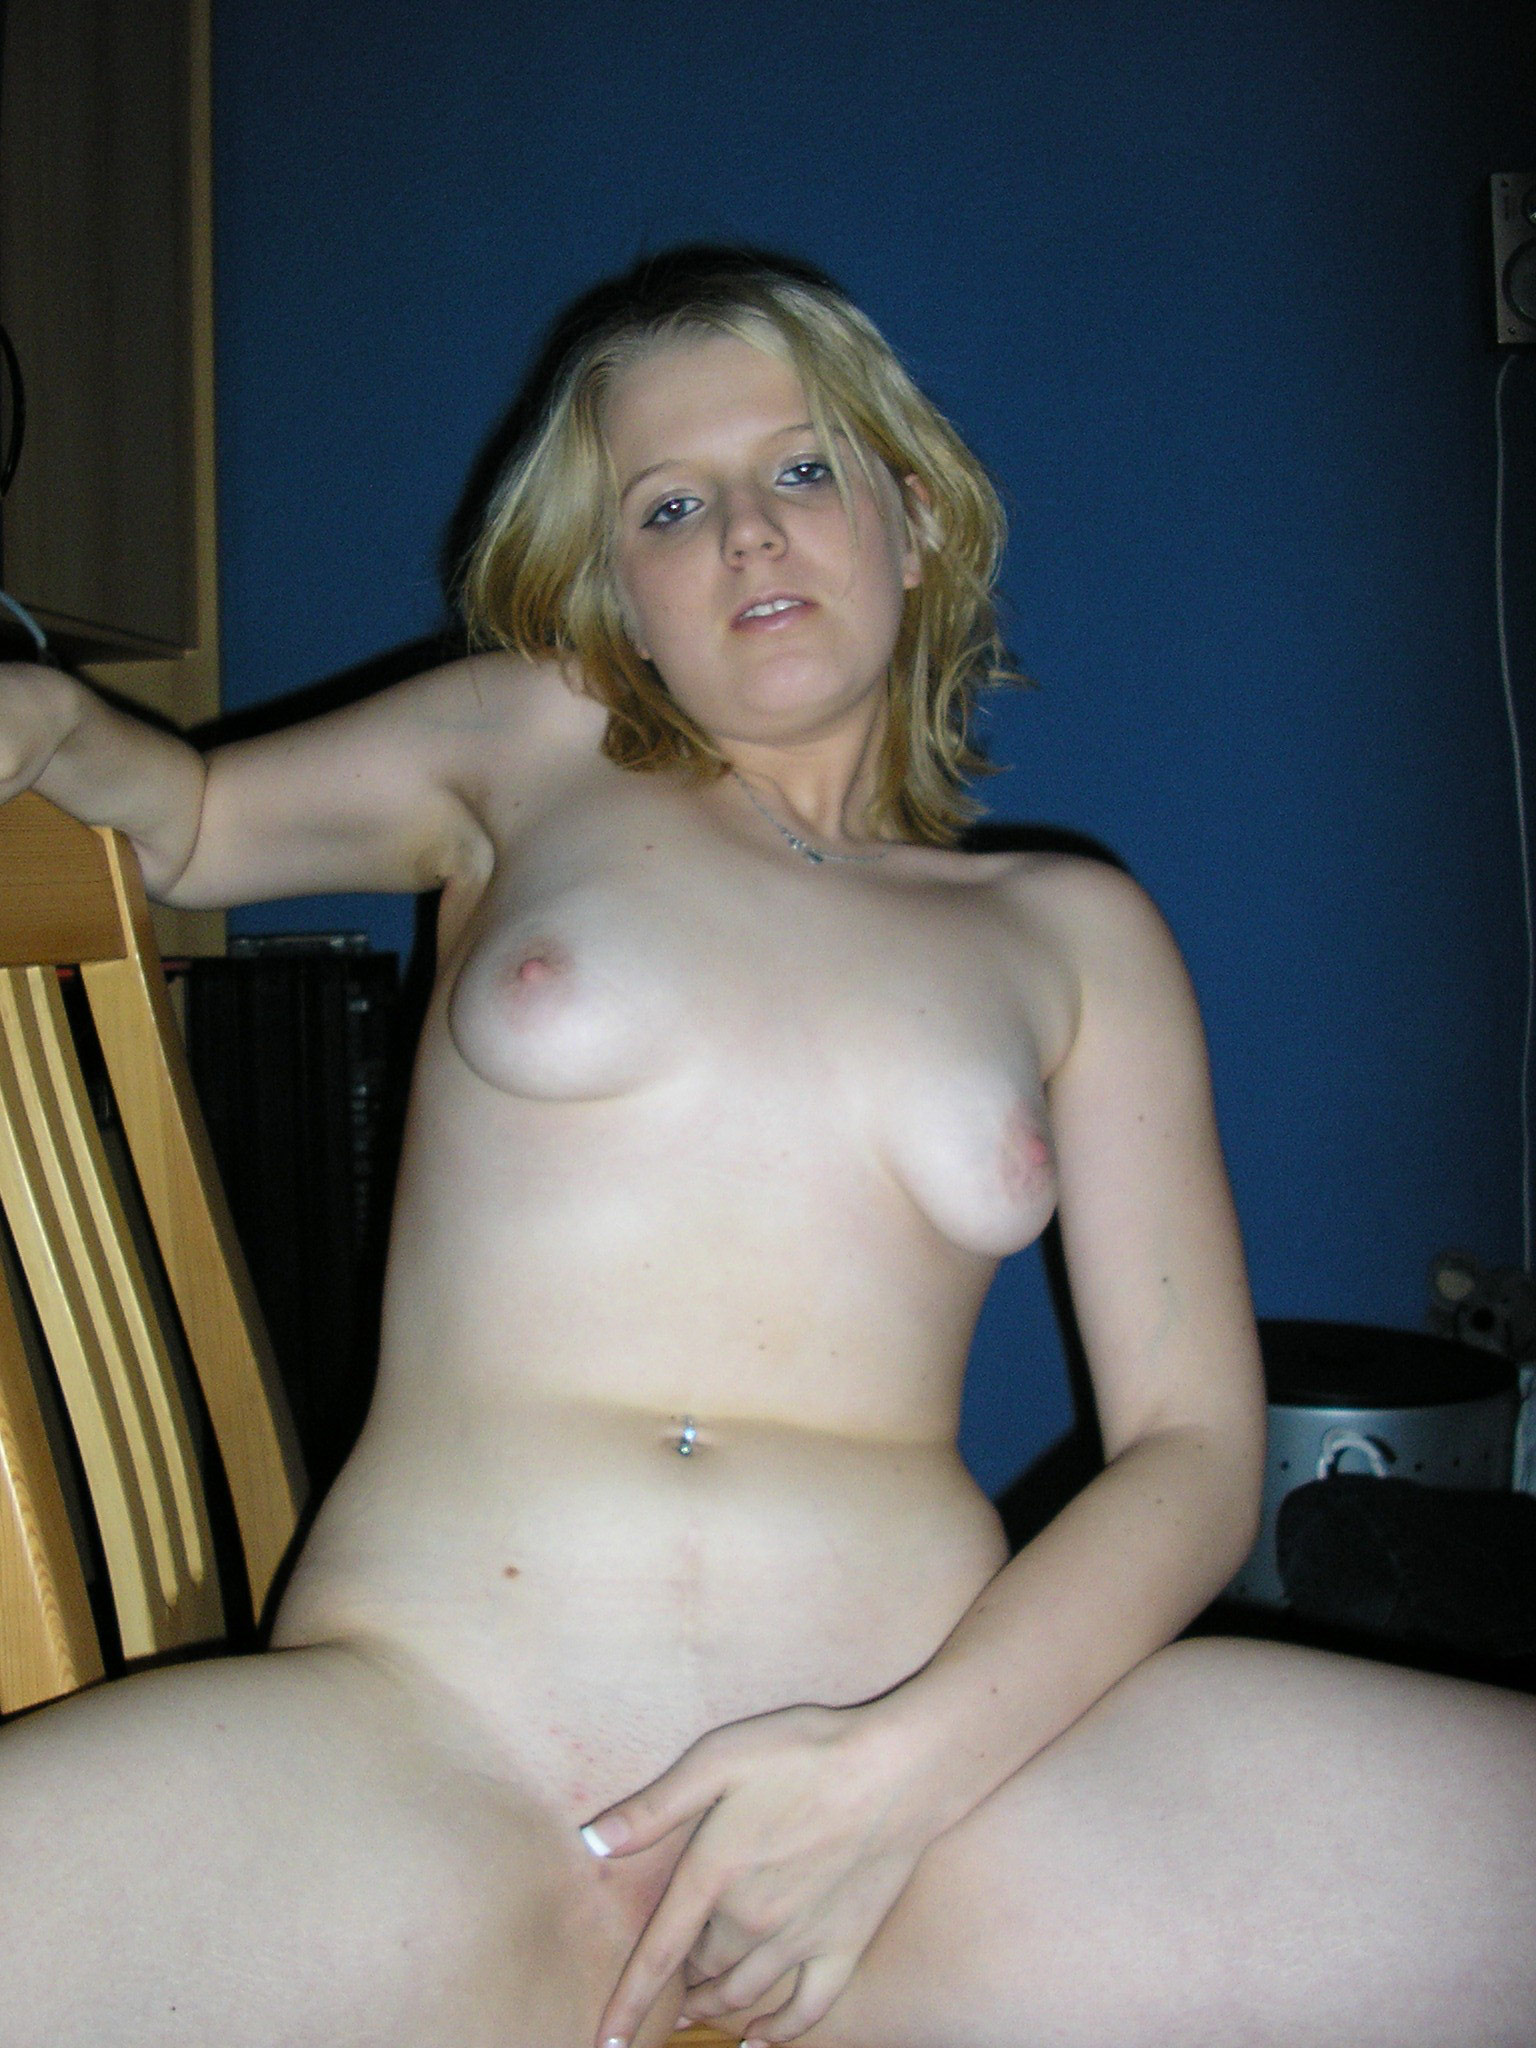 Nude Photos Of Virgin Chubby Girls